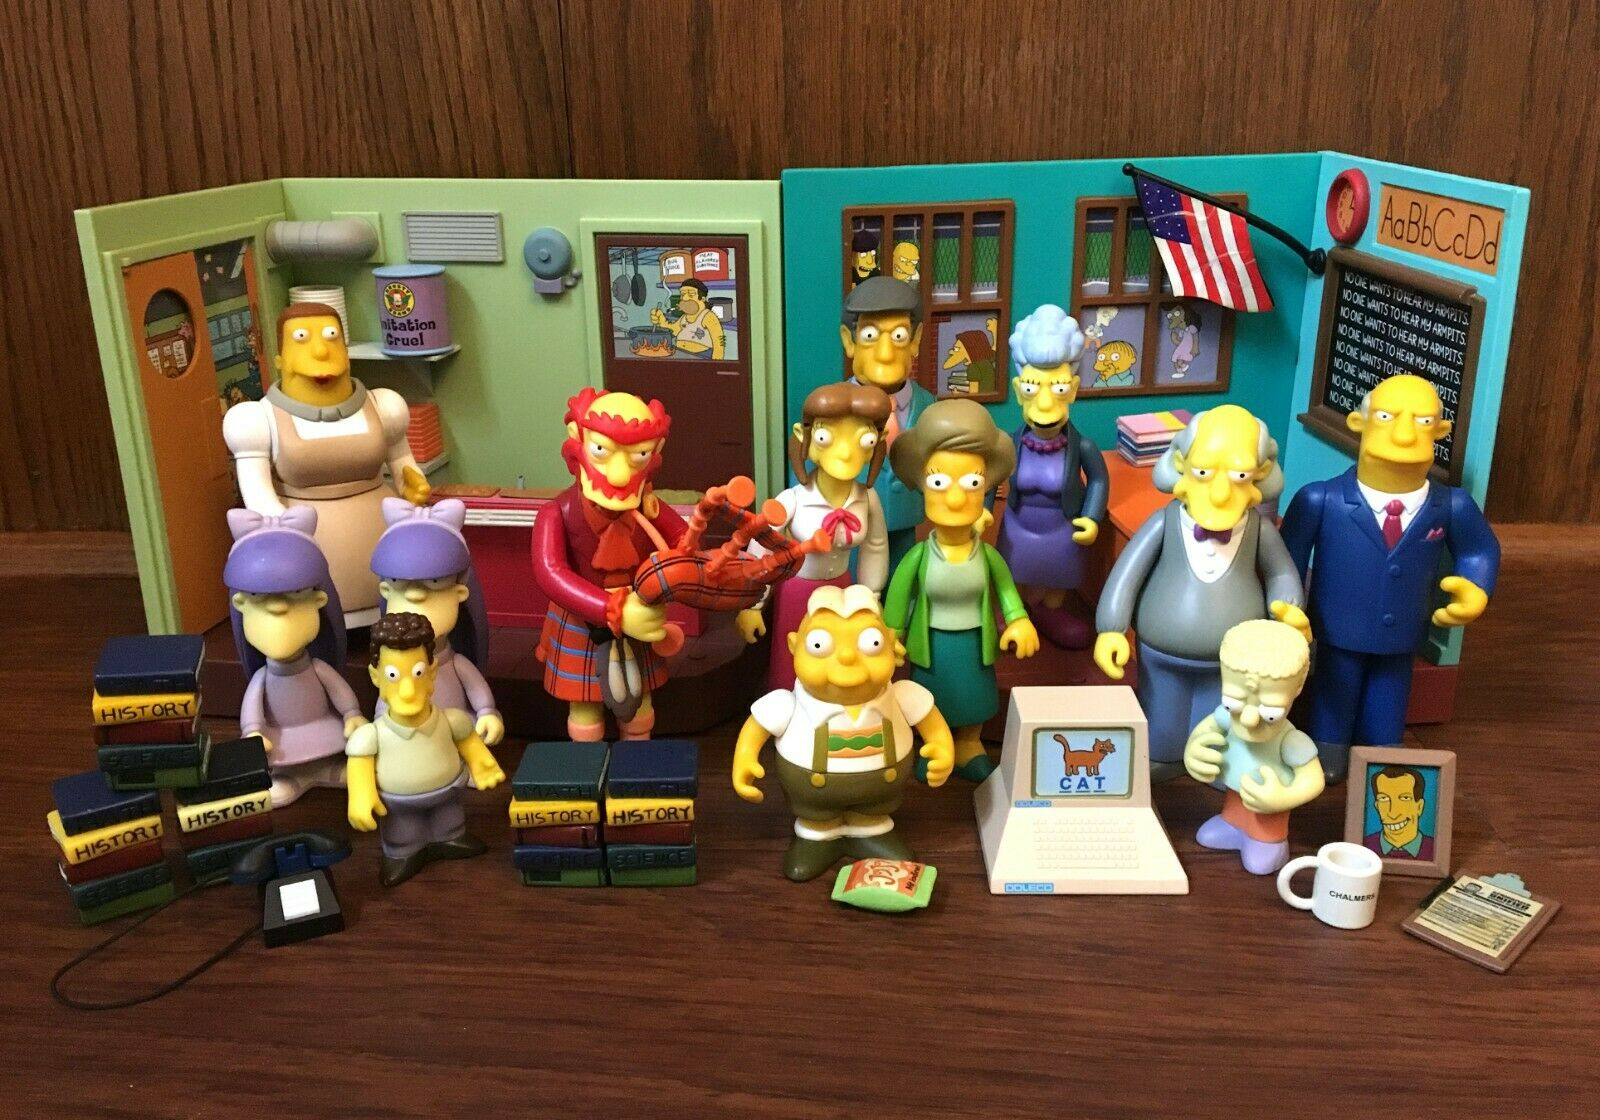 Simpsons WOS Playmates Figures Playsets Masse unserefield Elementary Cafeteria